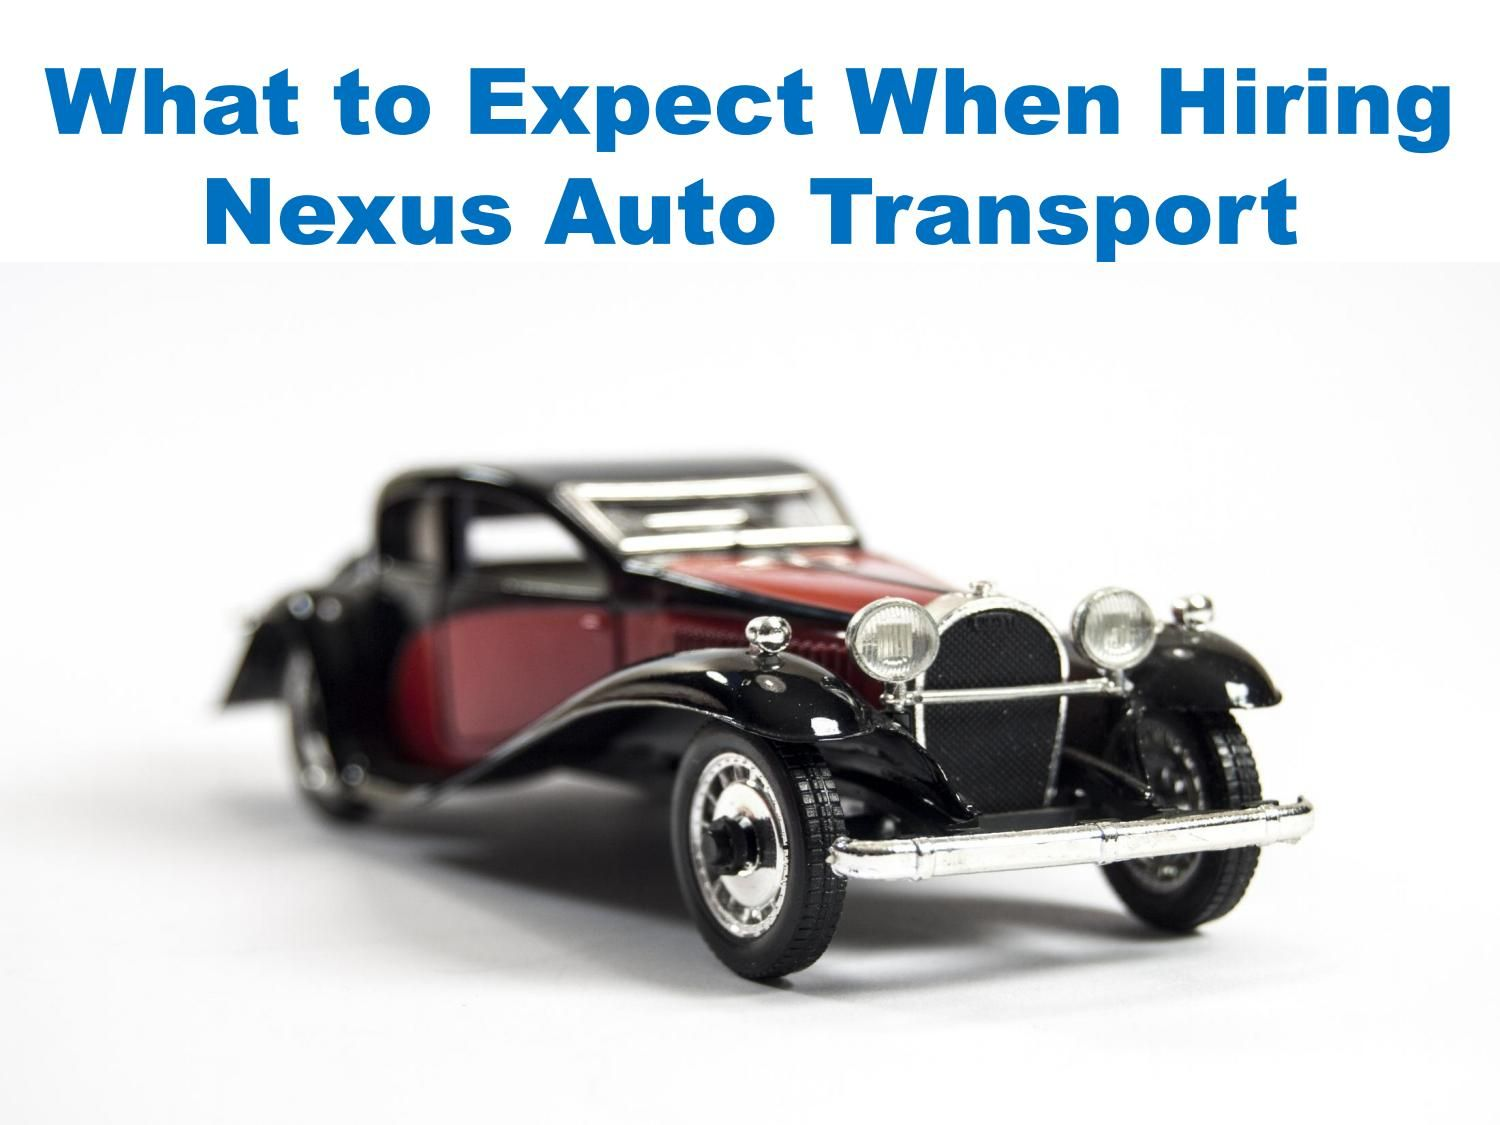 what to expect when hiring nexus auto transport | car shipping